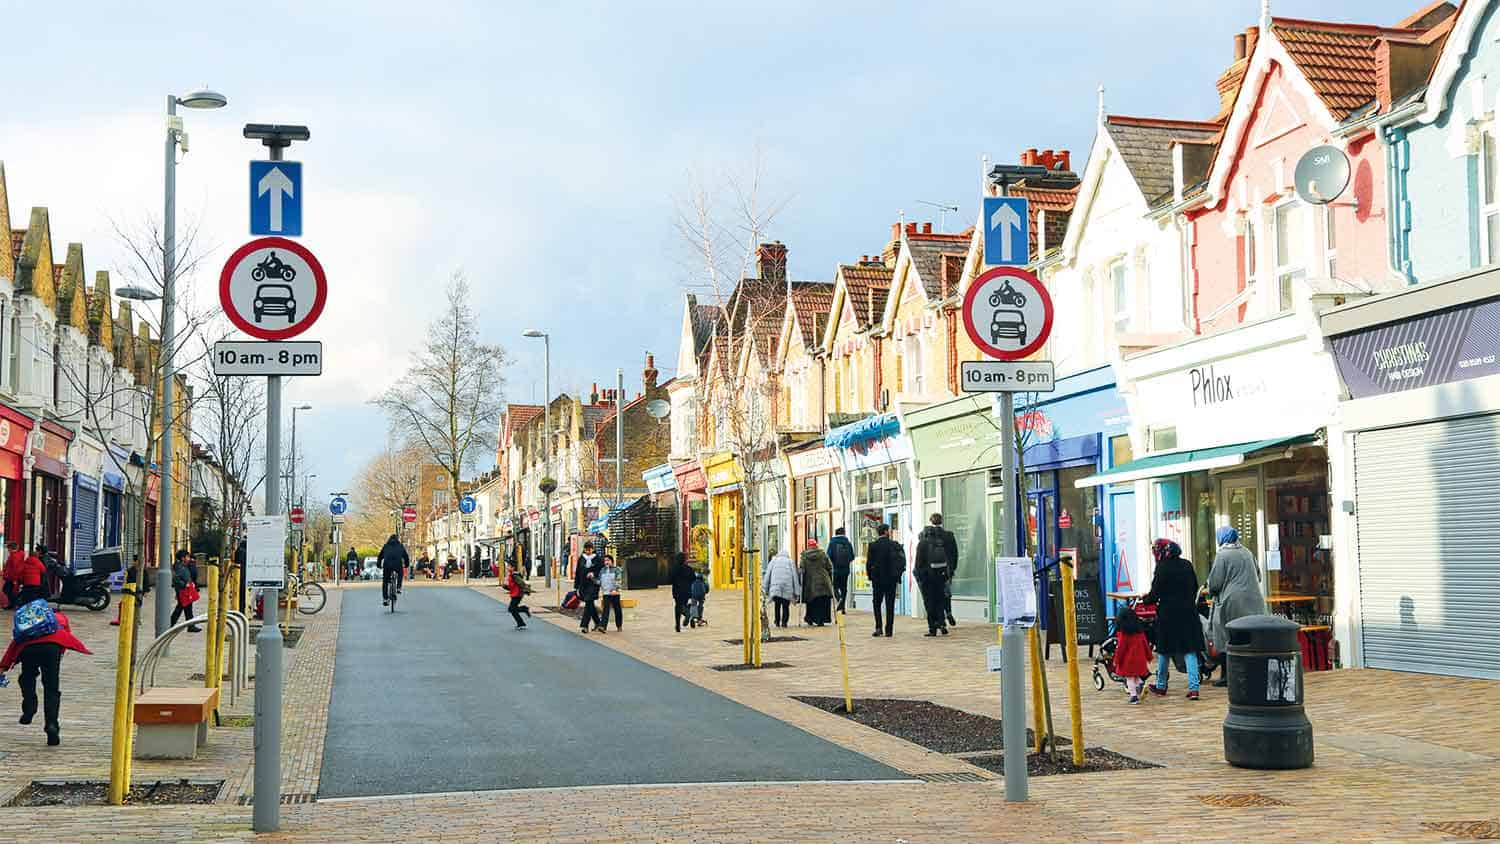 A high street with shops in London